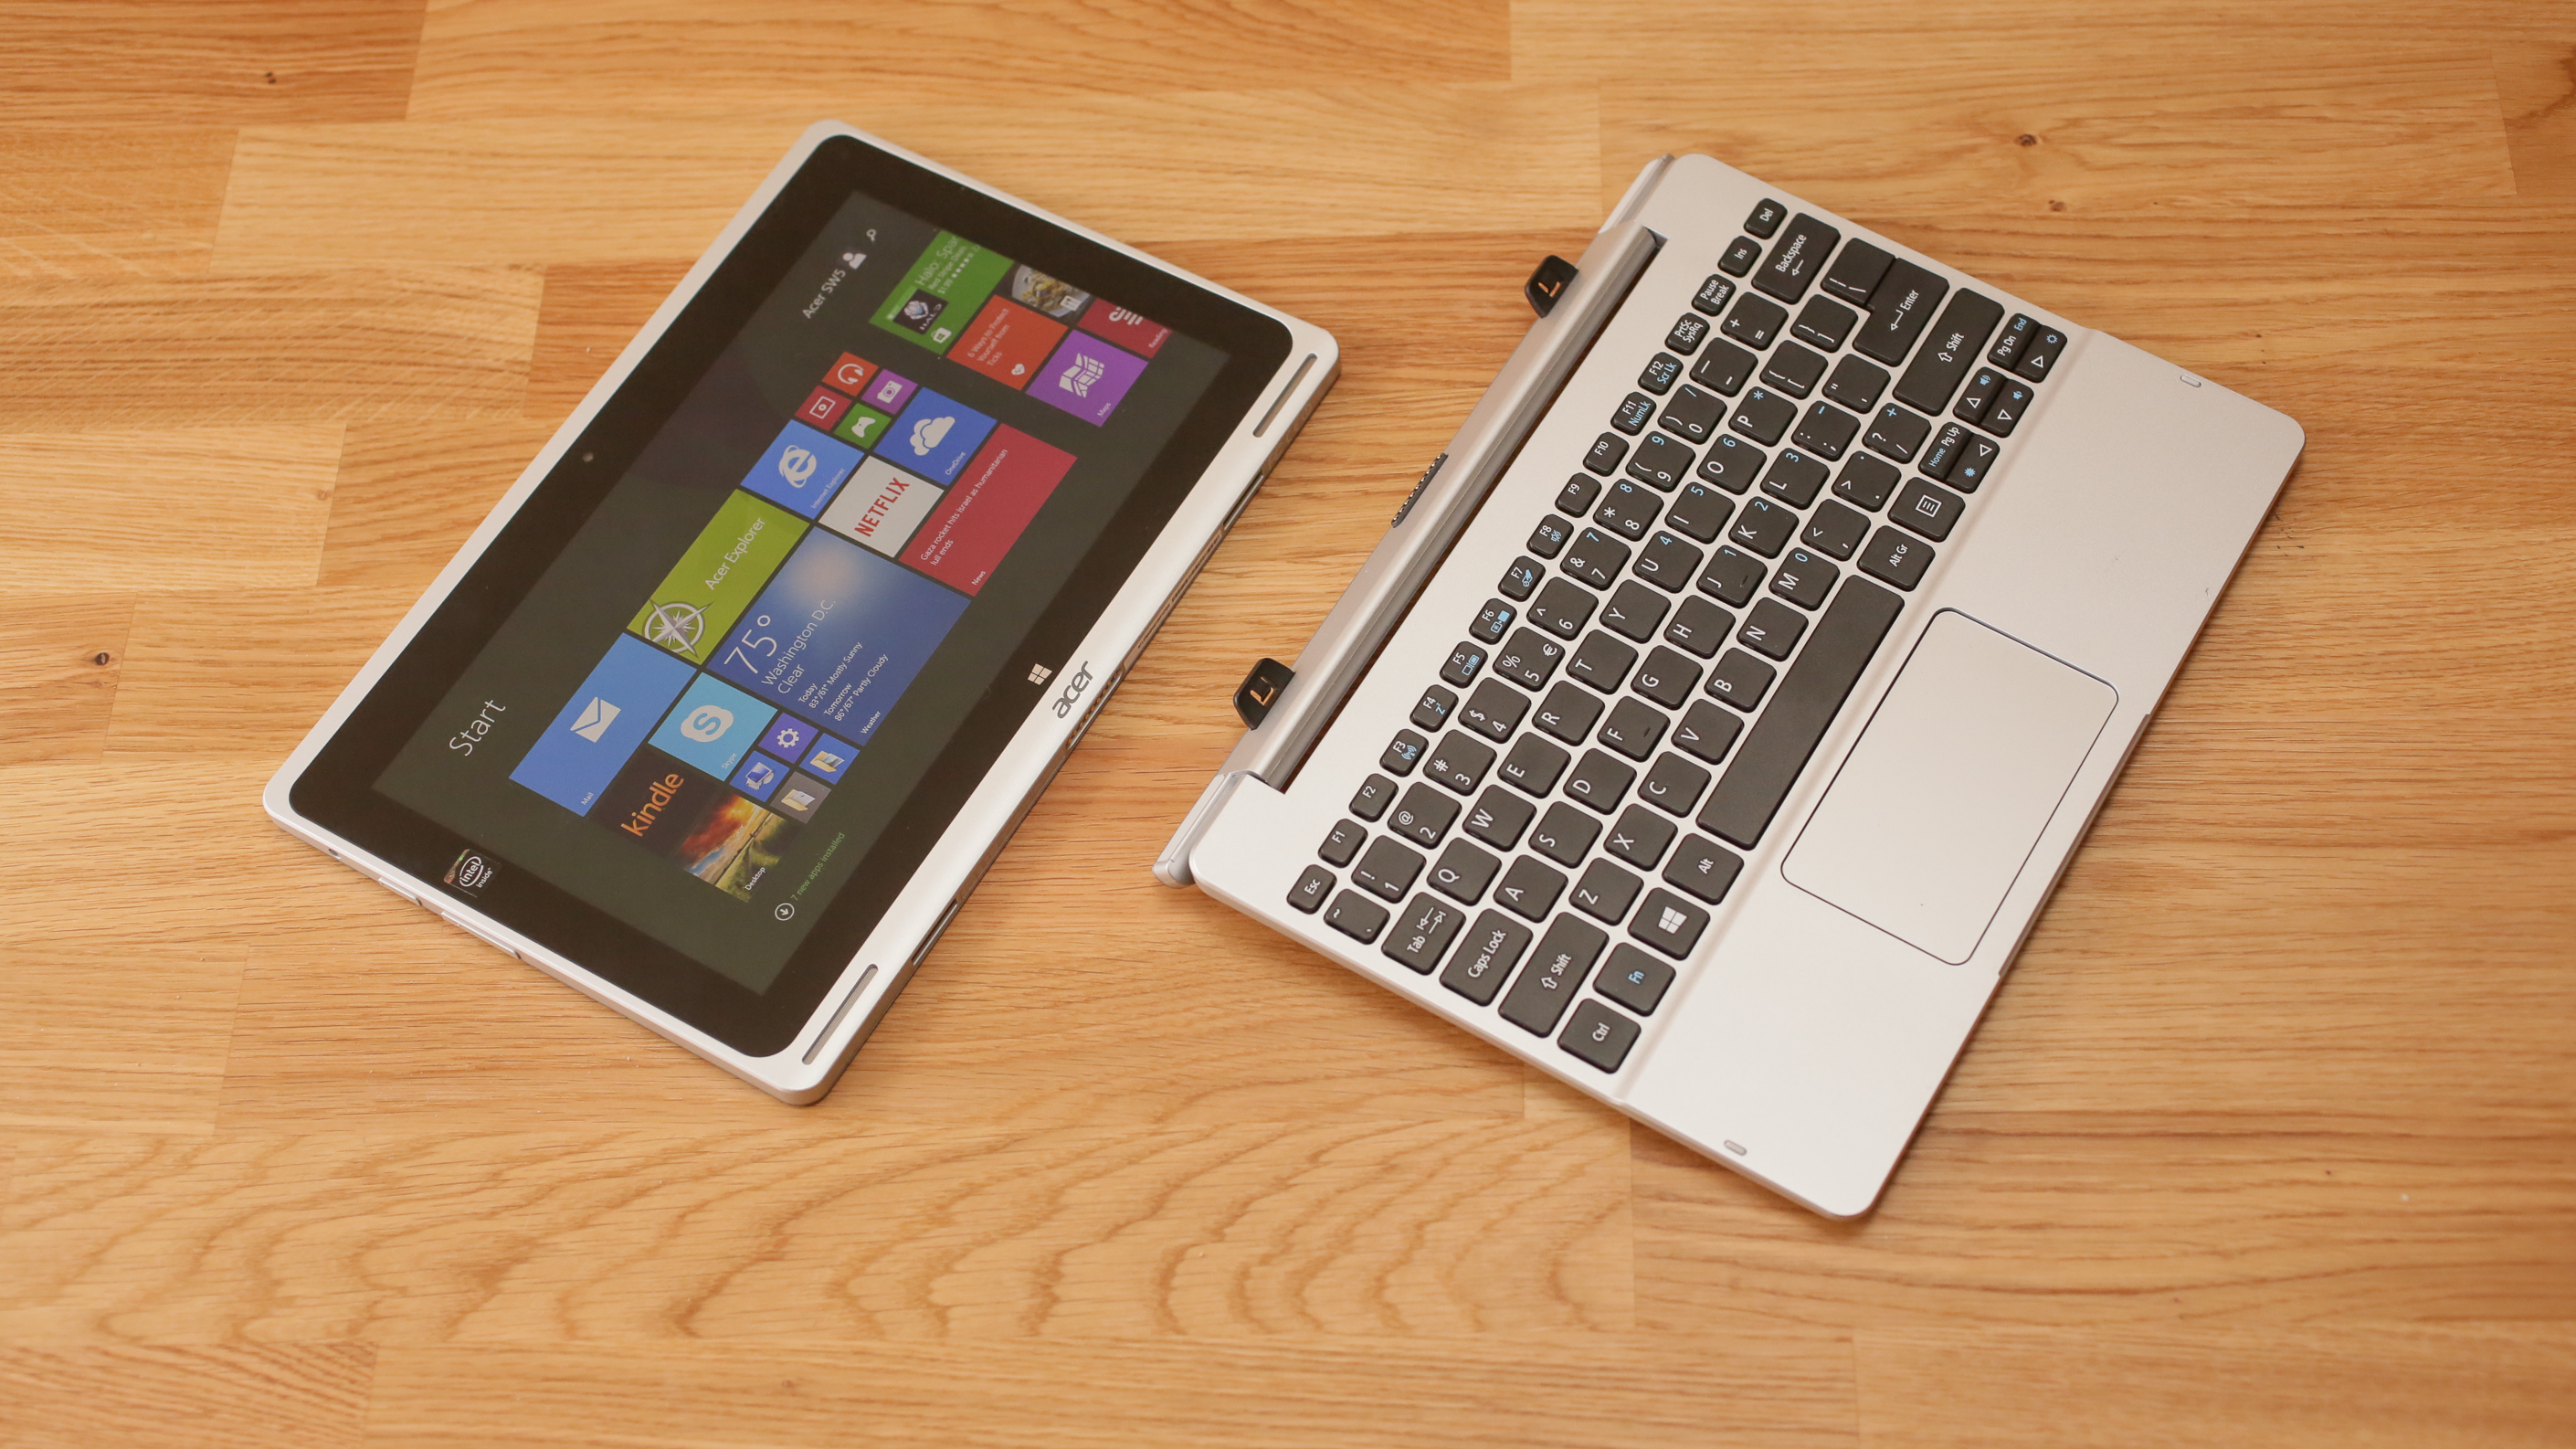 acer-switch-10-product-photos09.jpg